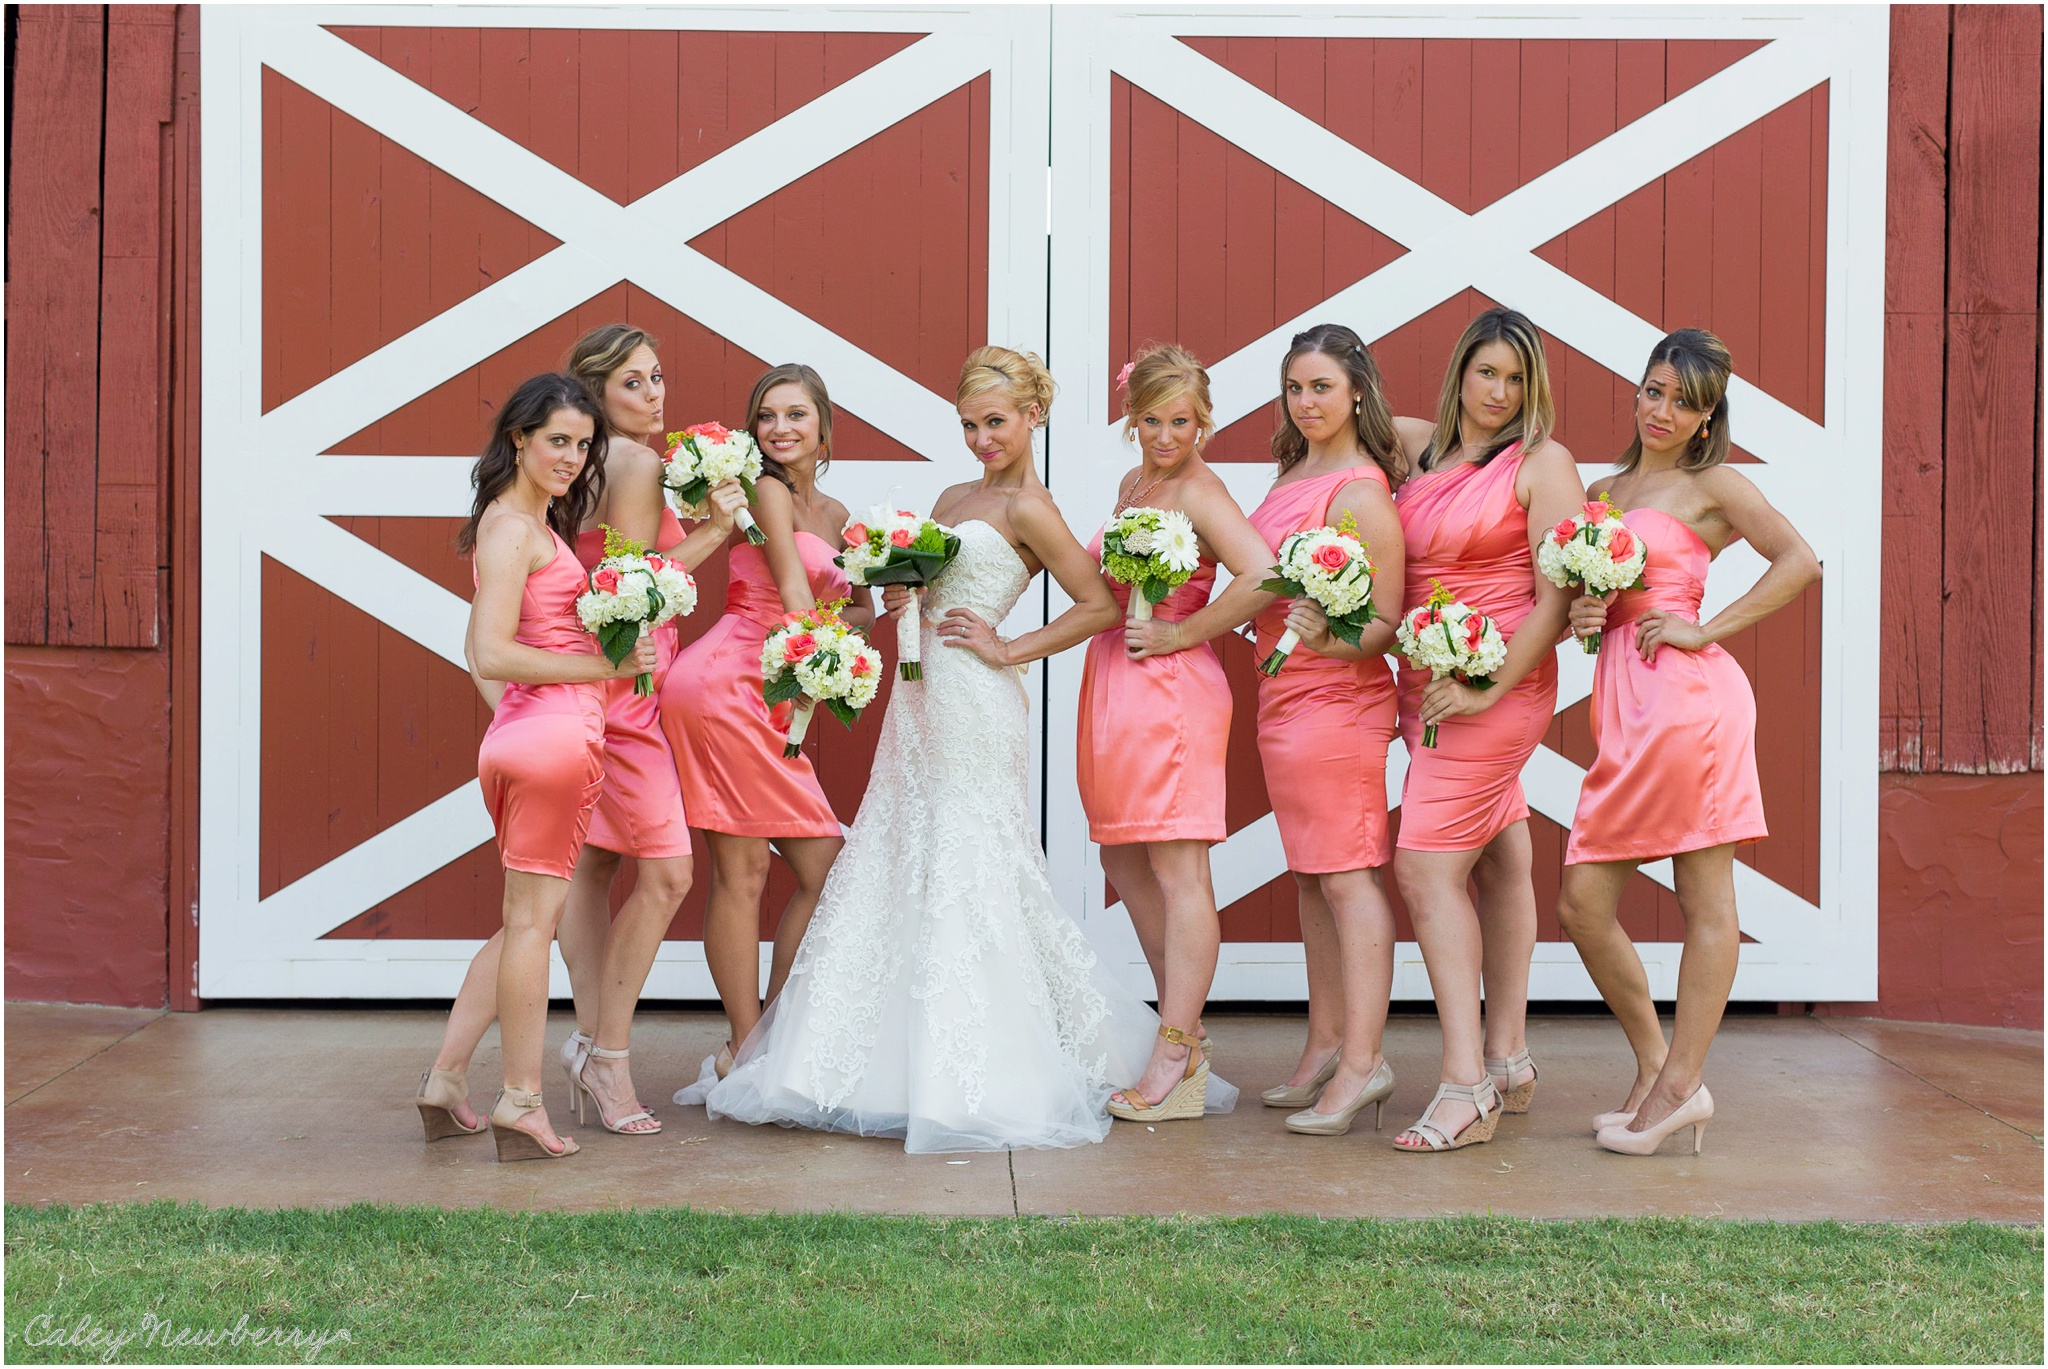 hot-bridesmaids-wedding-photos.jpg